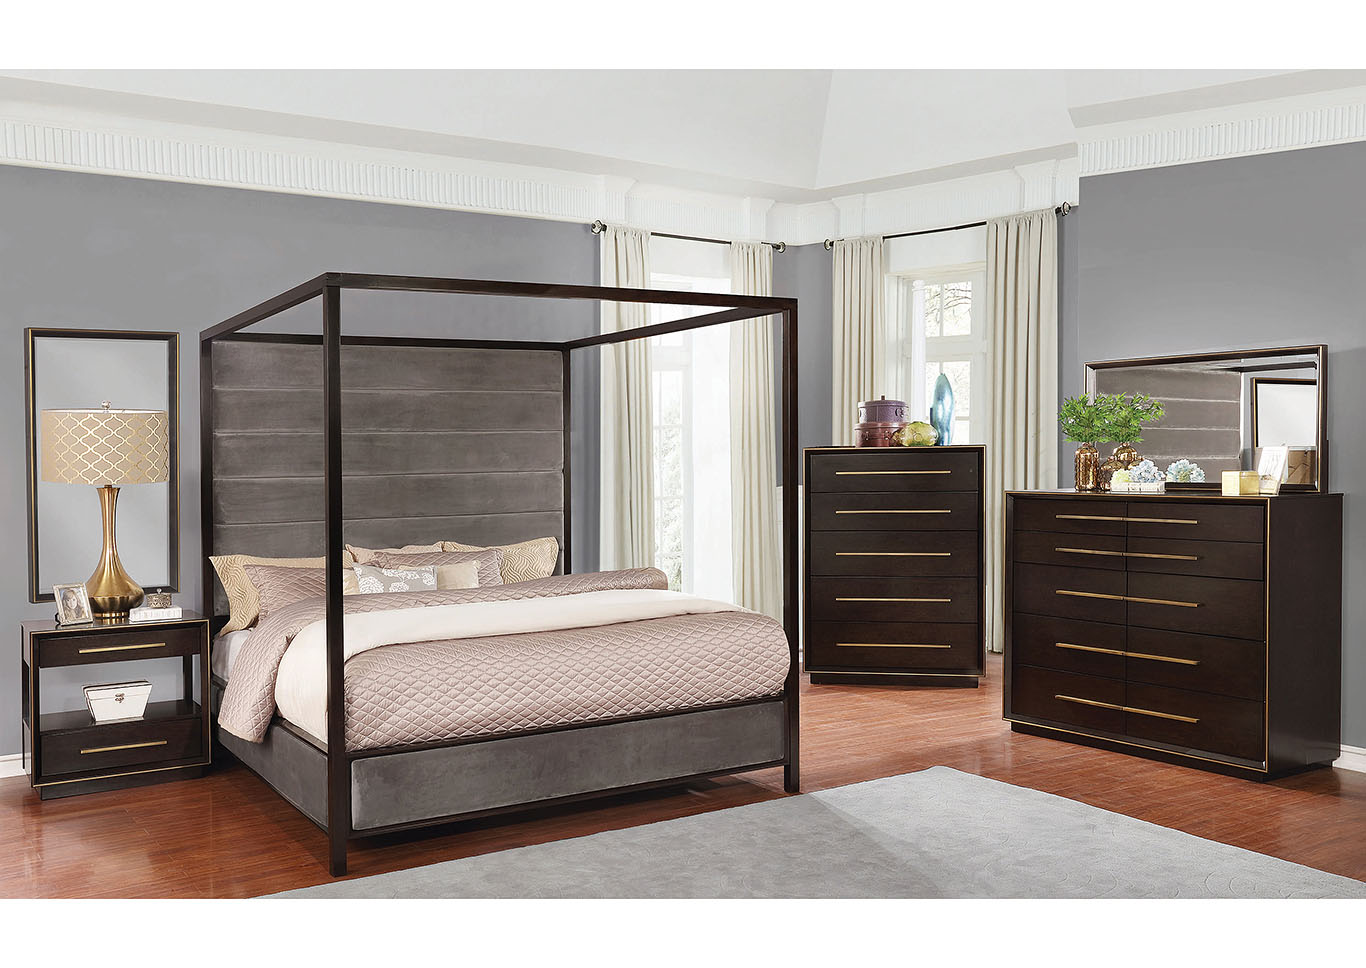 Smoked Peppercorn Queen Canopy Bed,Coaster Furniture